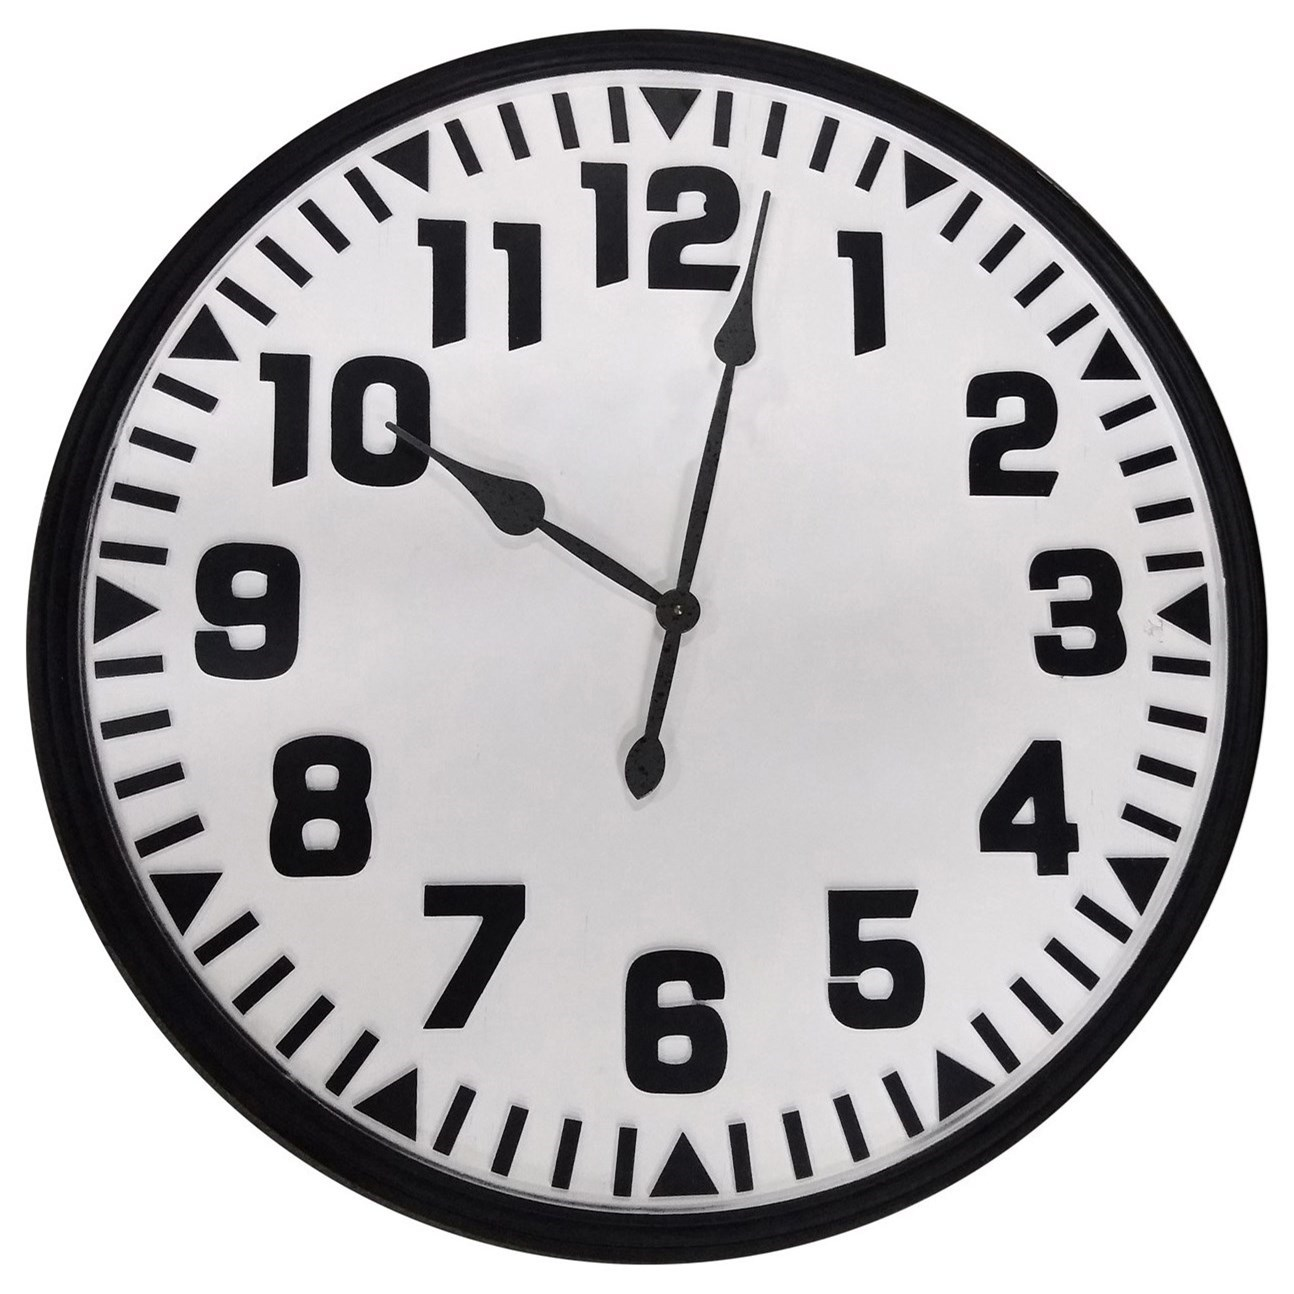 Clocks Decorative Wall Clock by Crestview Collection at Rife's Home Furniture